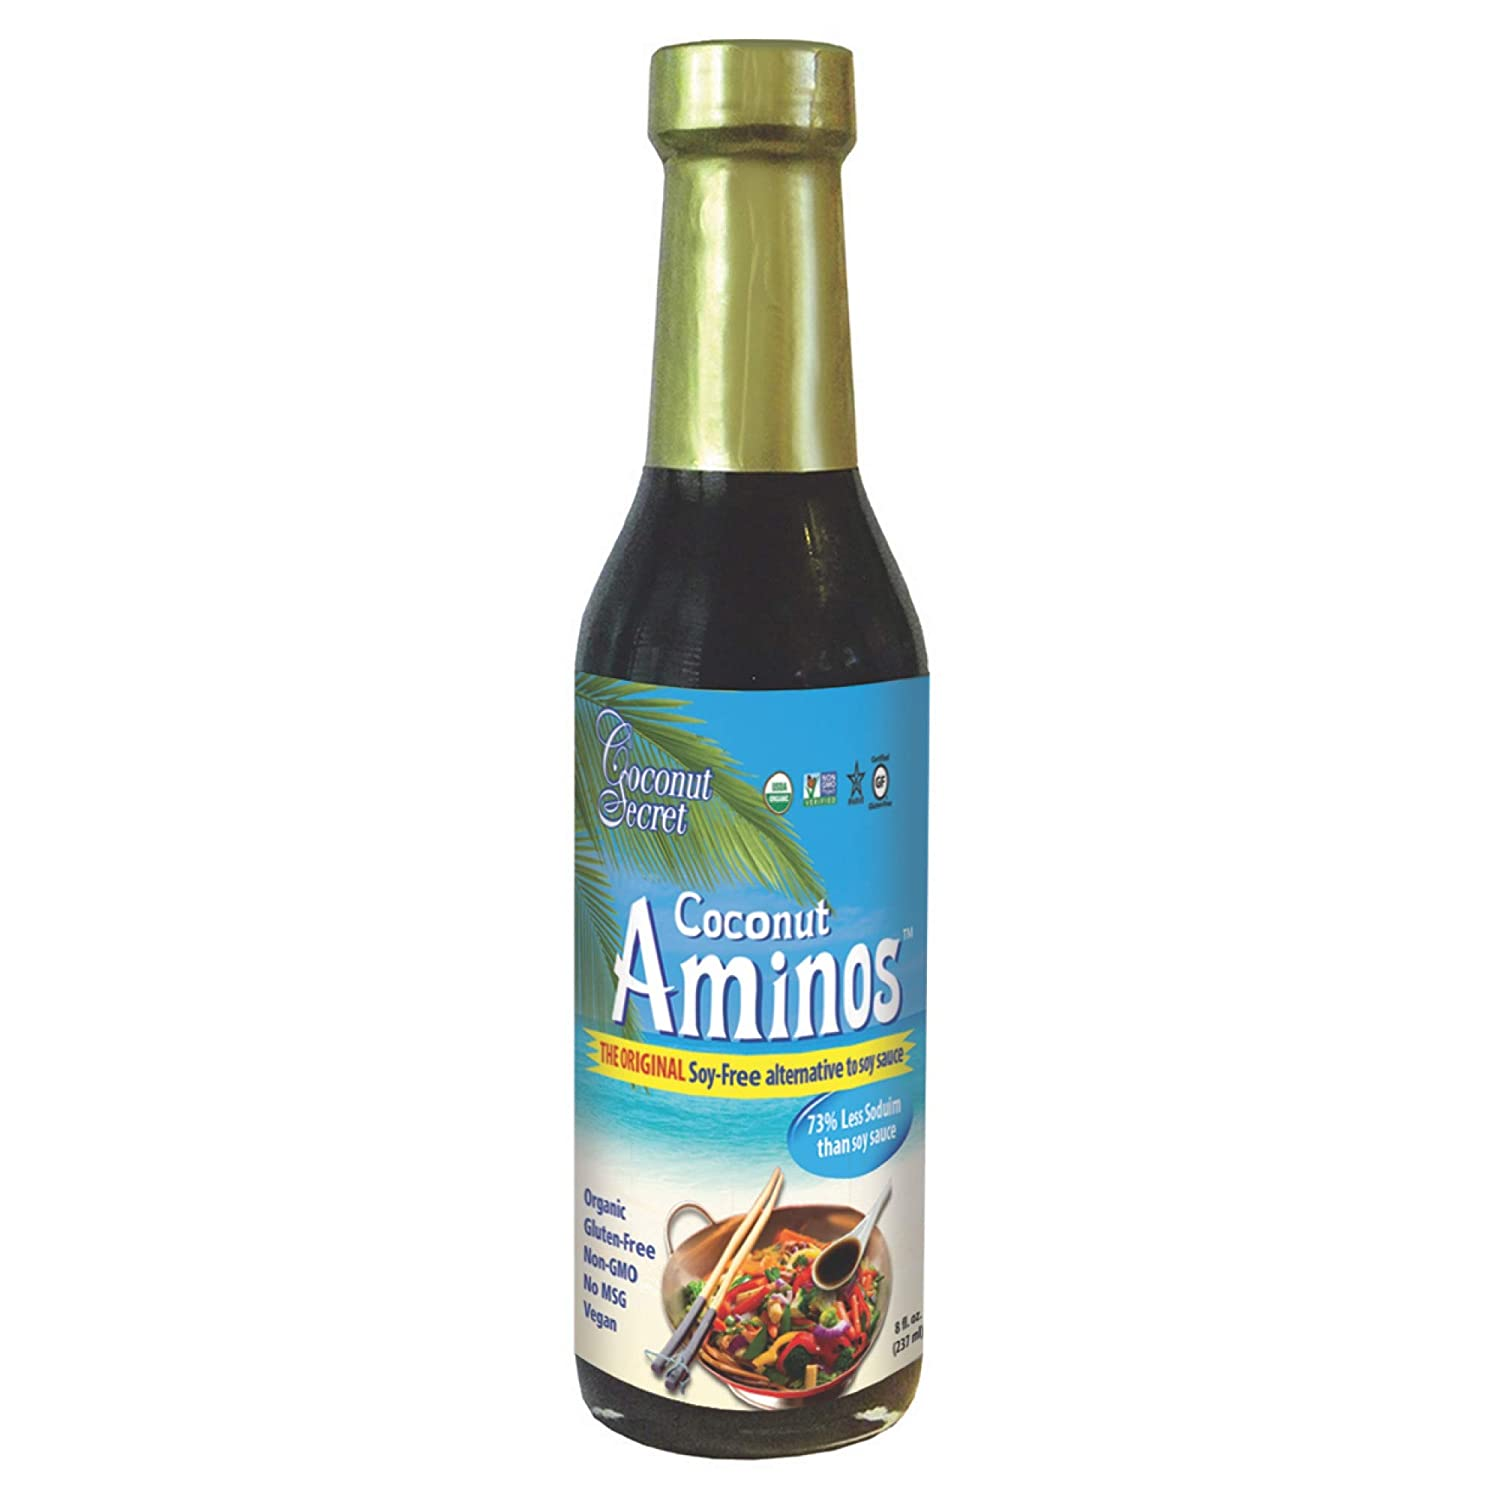 Coconut Secret, Raw Coconut Aminos, Soy-Free Seasoning Sauce, 8 fl oz (237 ml): Amazon.es: Electrónica